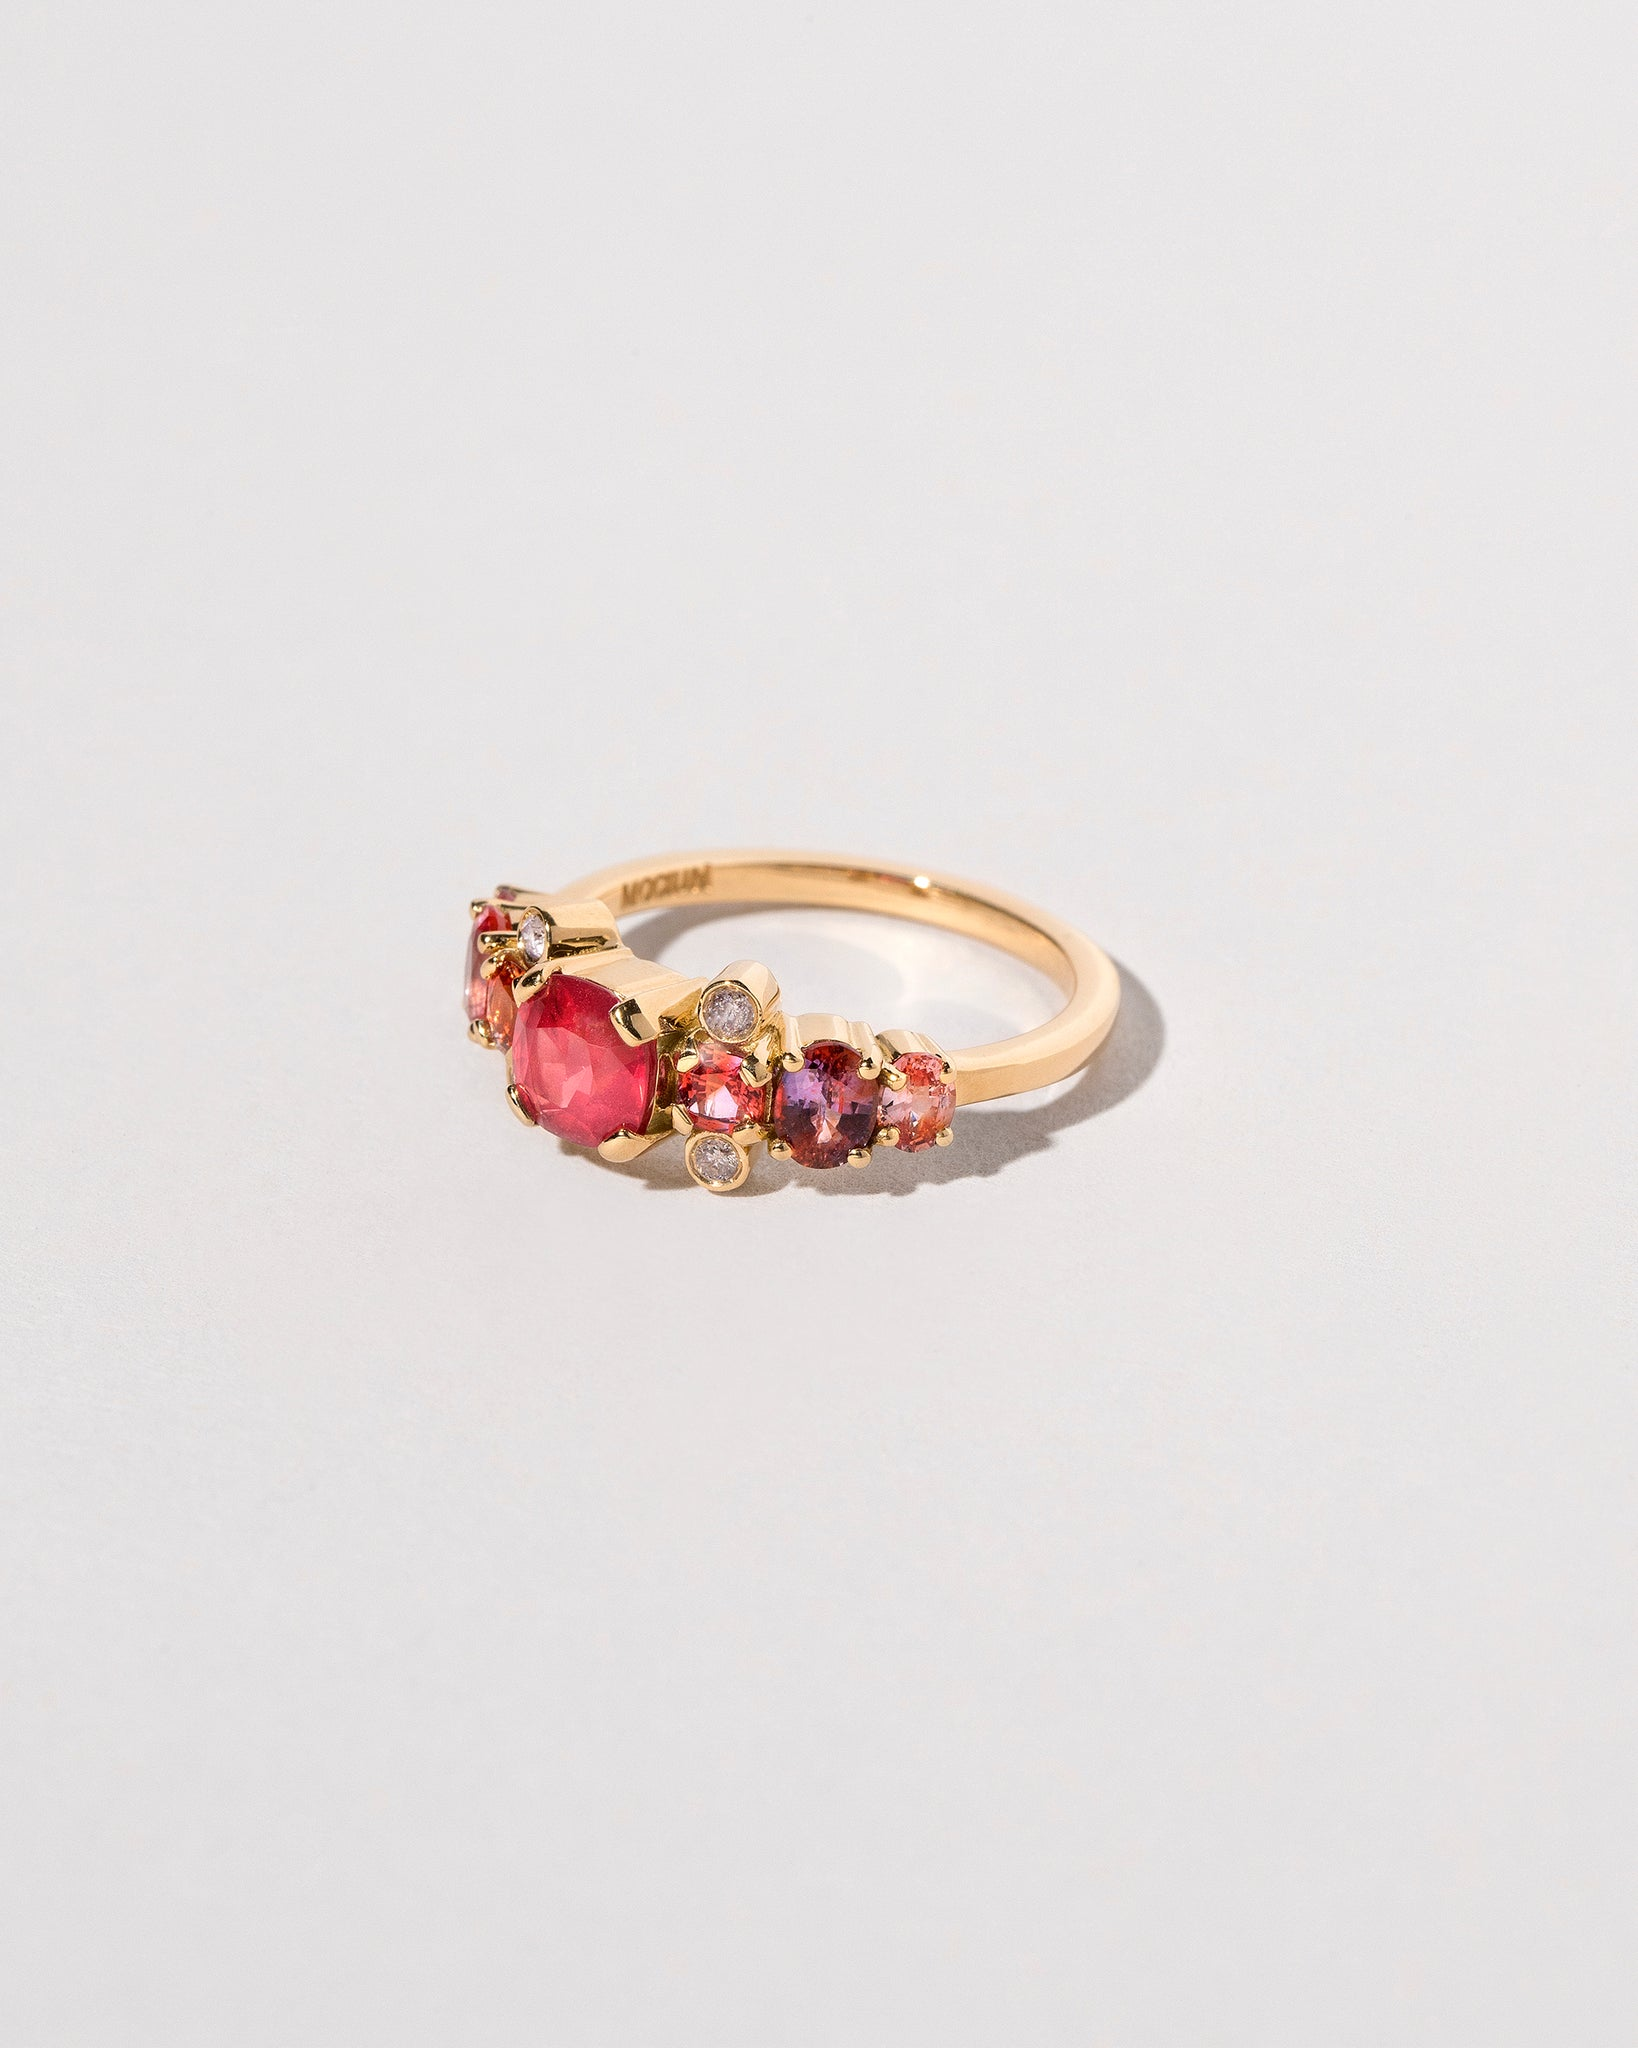 Gladiola Ring - Final Sale on light color background